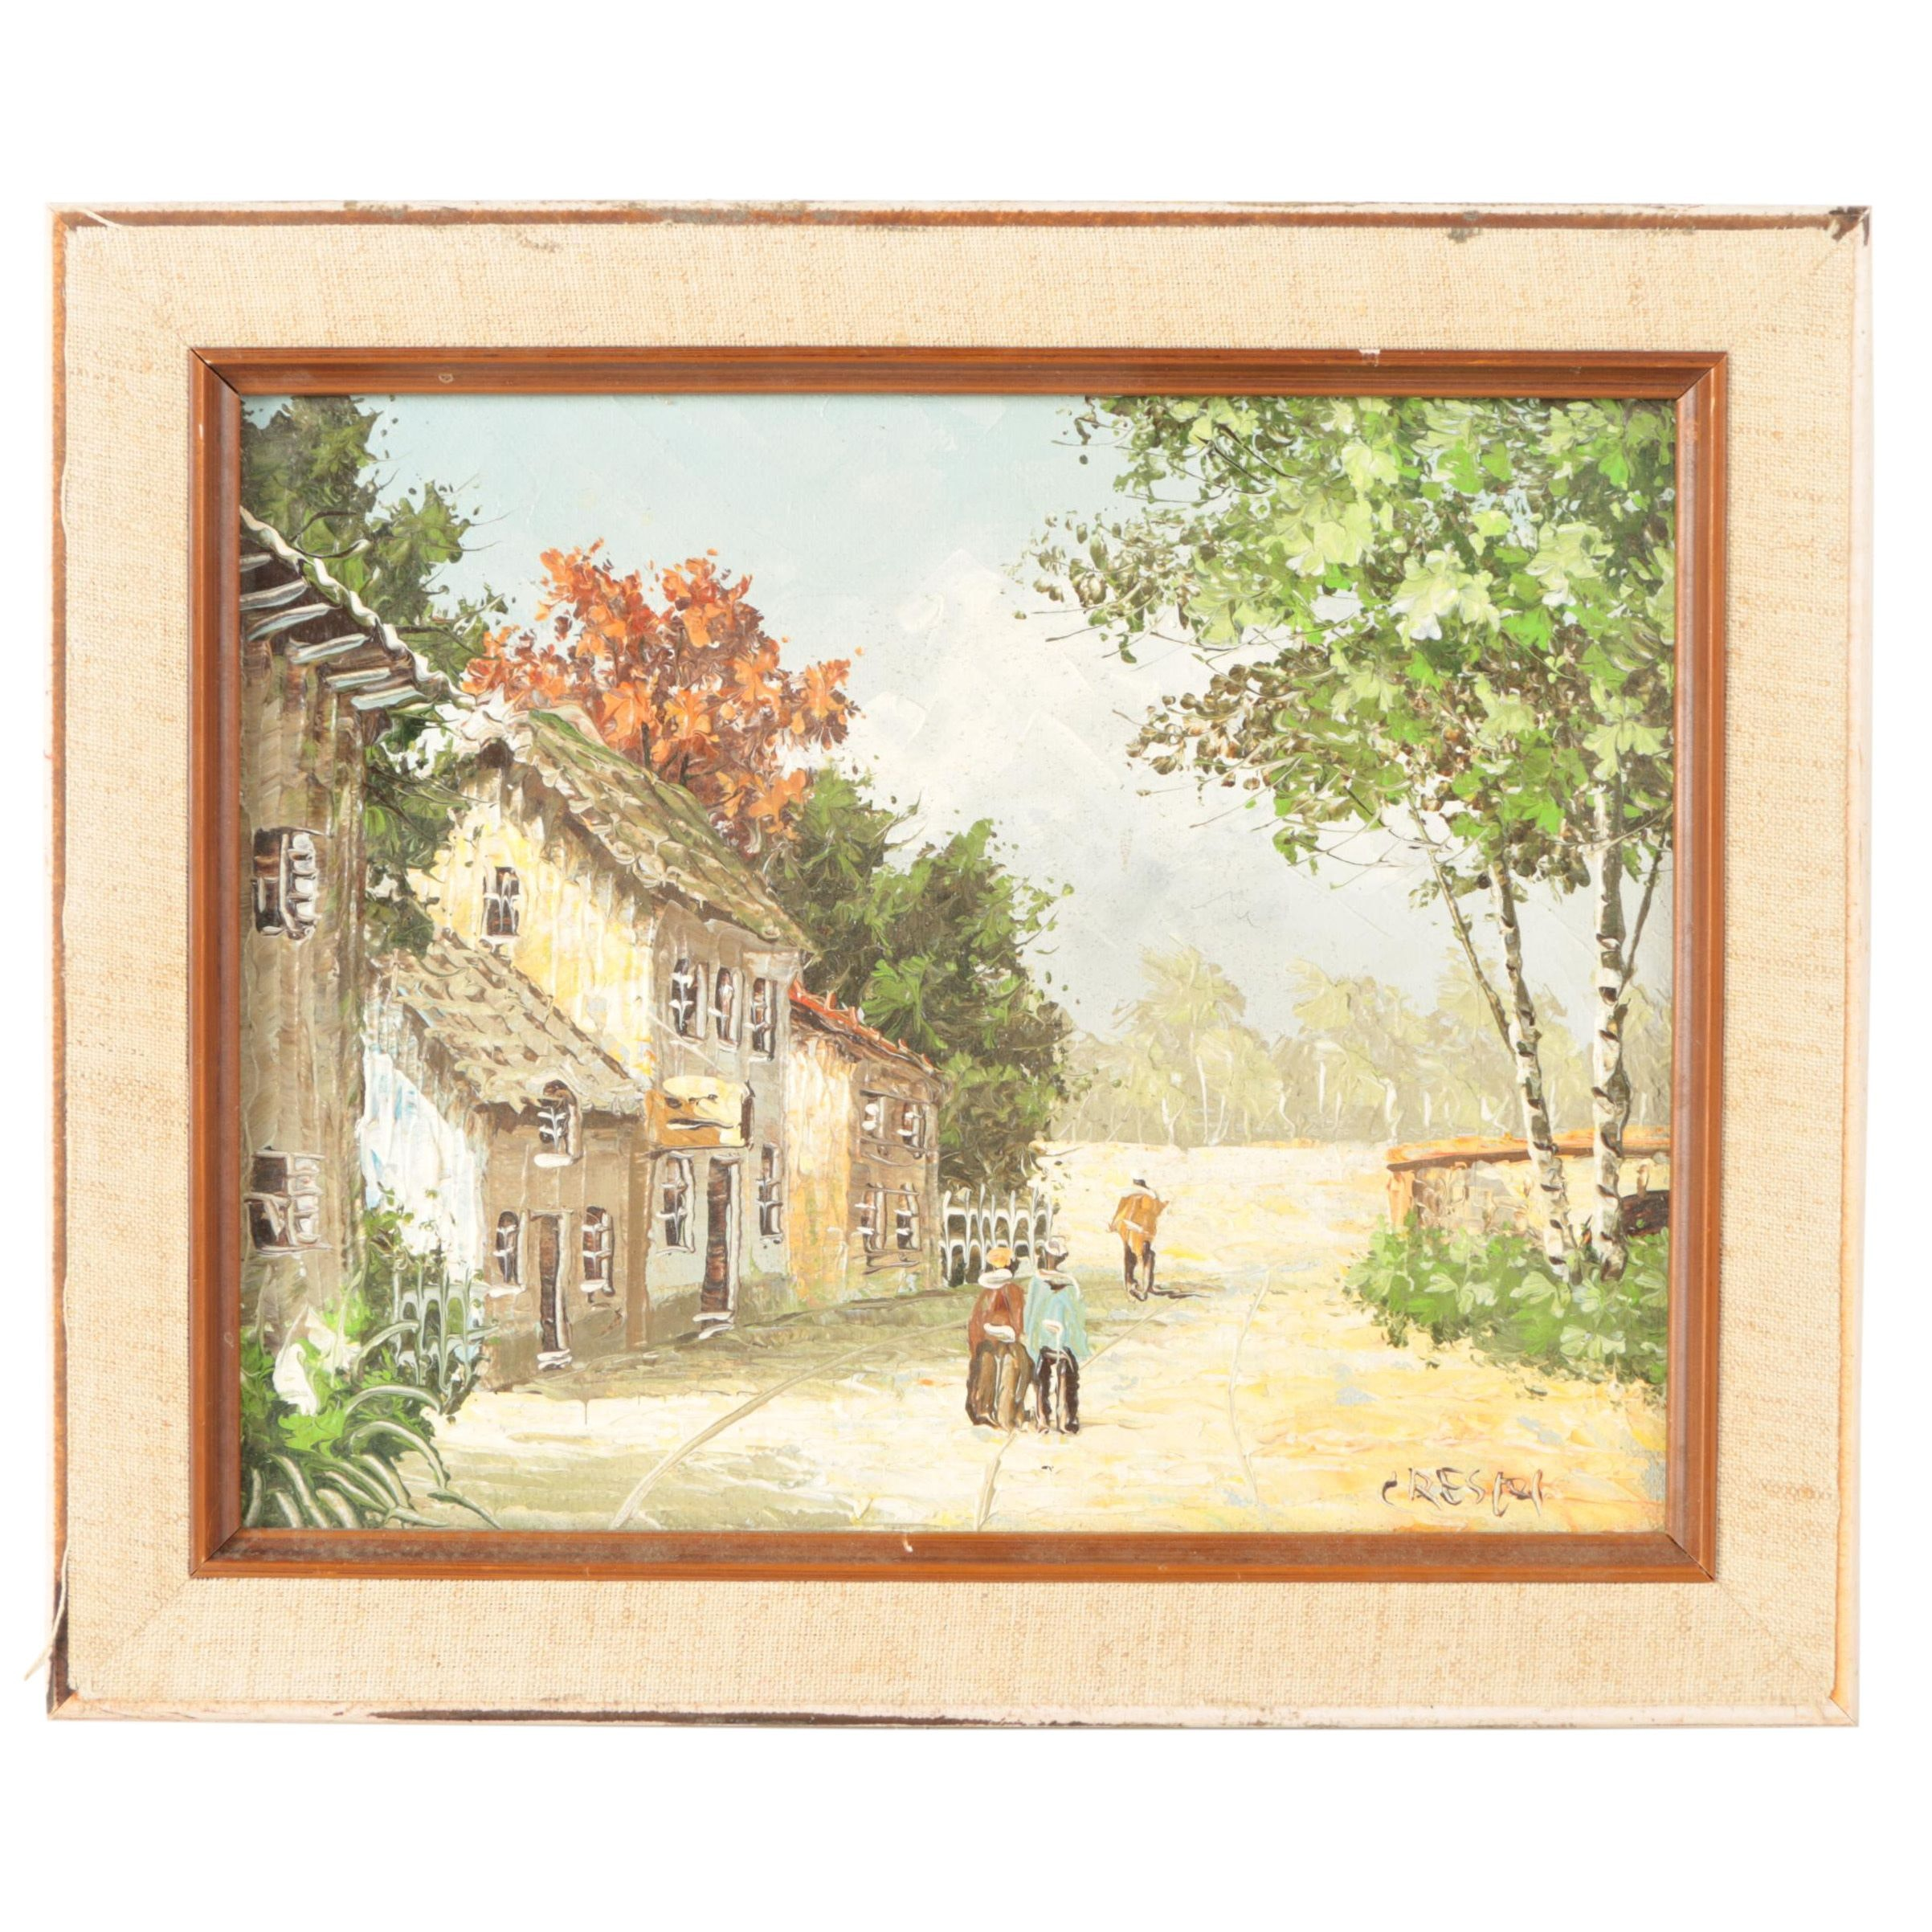 Crespi Oil Painting on Canvas of Rural Village Landscape